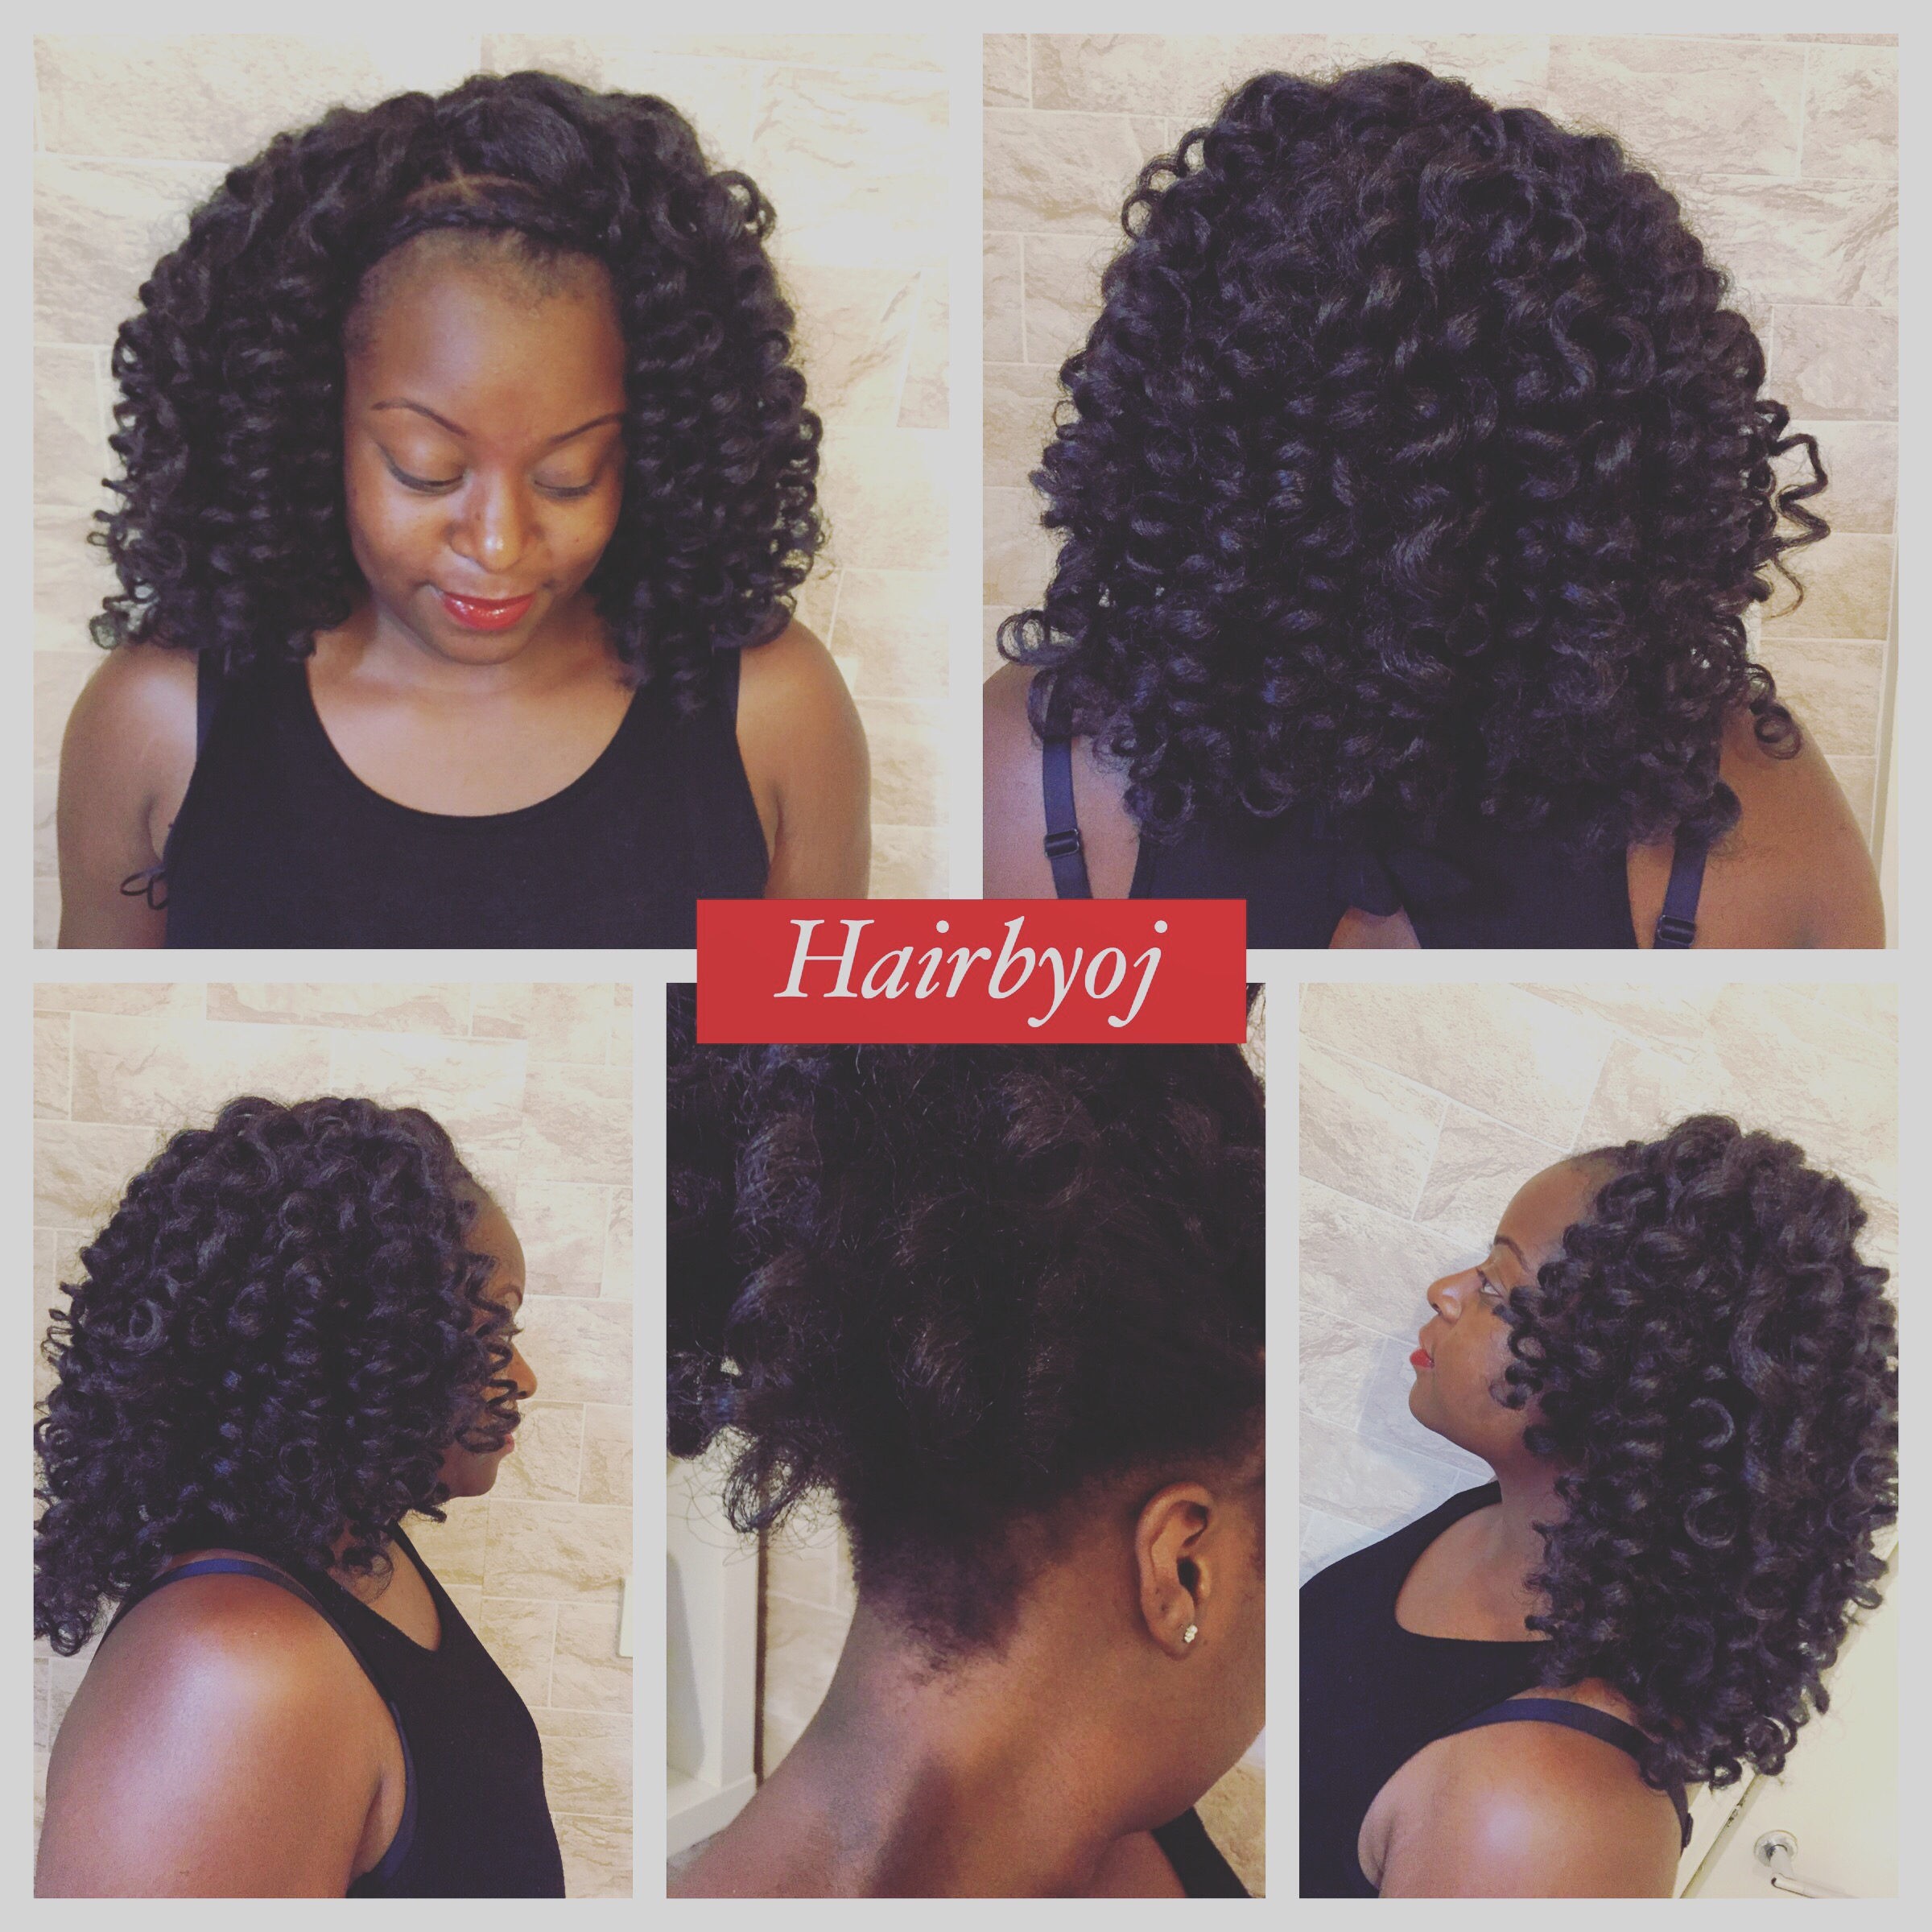 Crochet Hair Lengths : Shoulder length pre-curled crochet braids with Marley hair, knotless ...